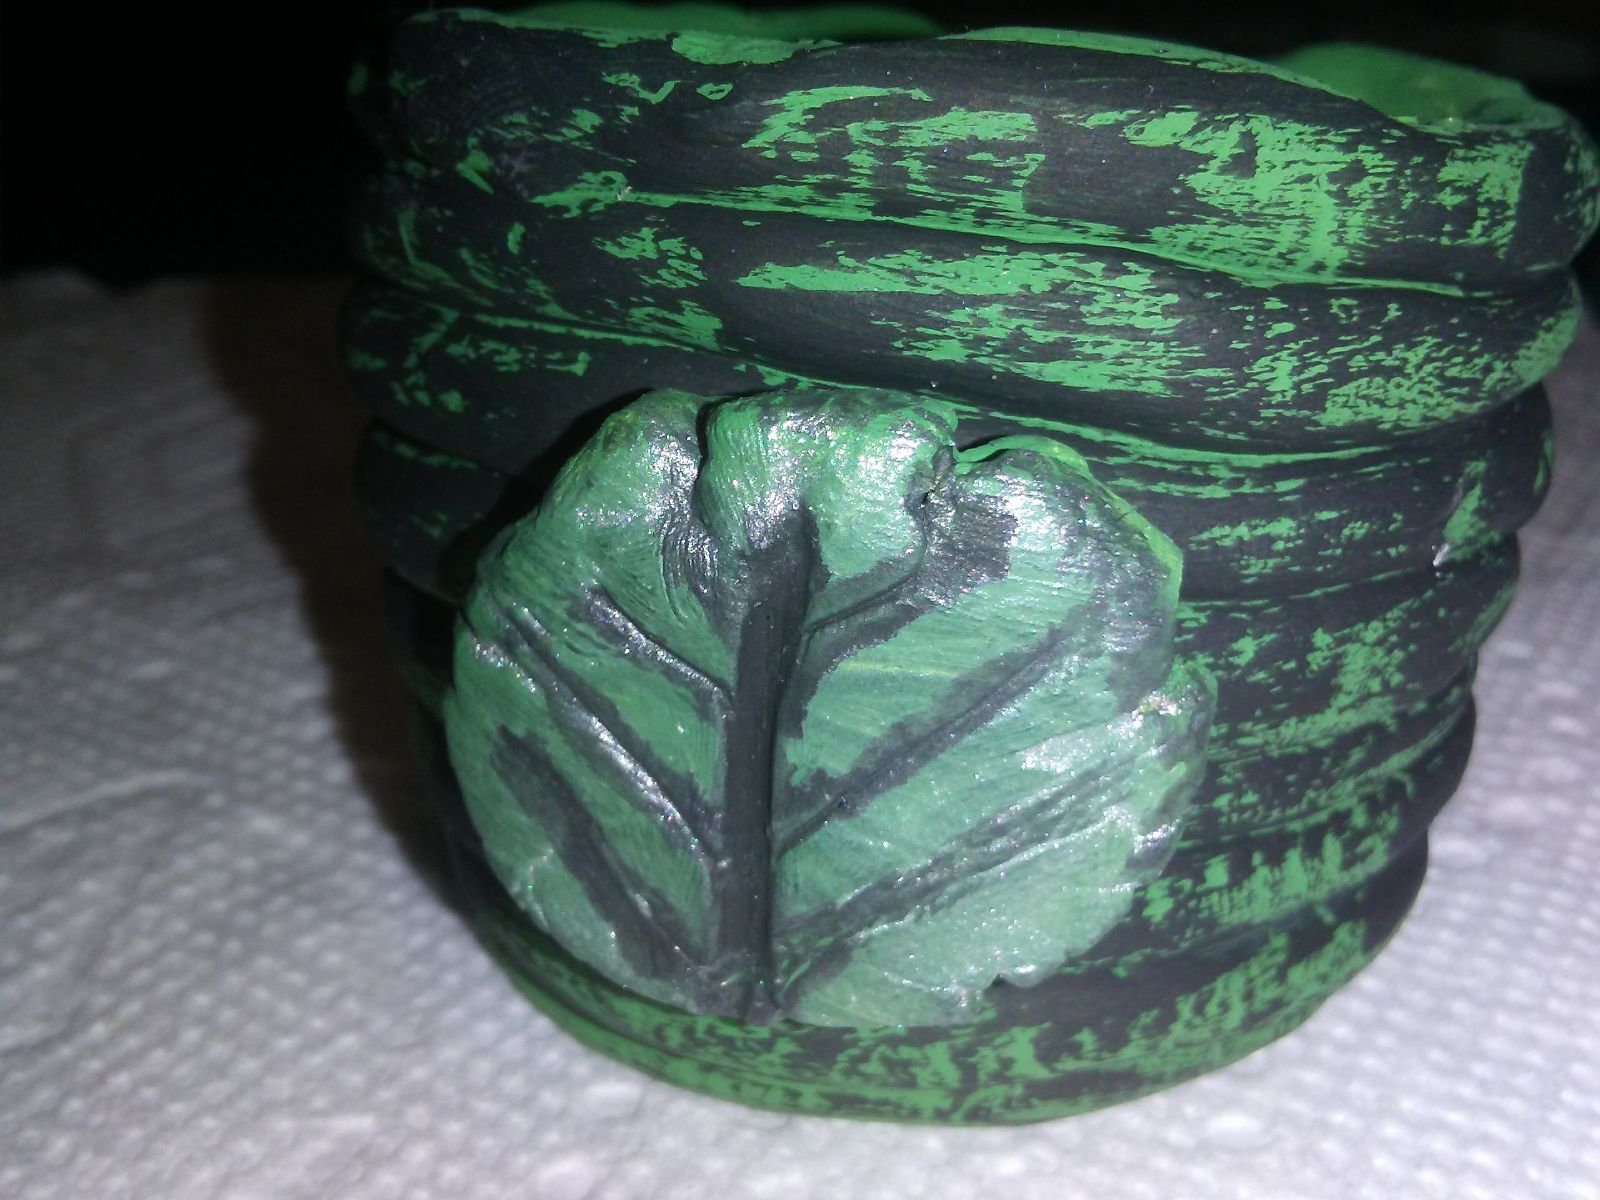 Handcrafted coil pot